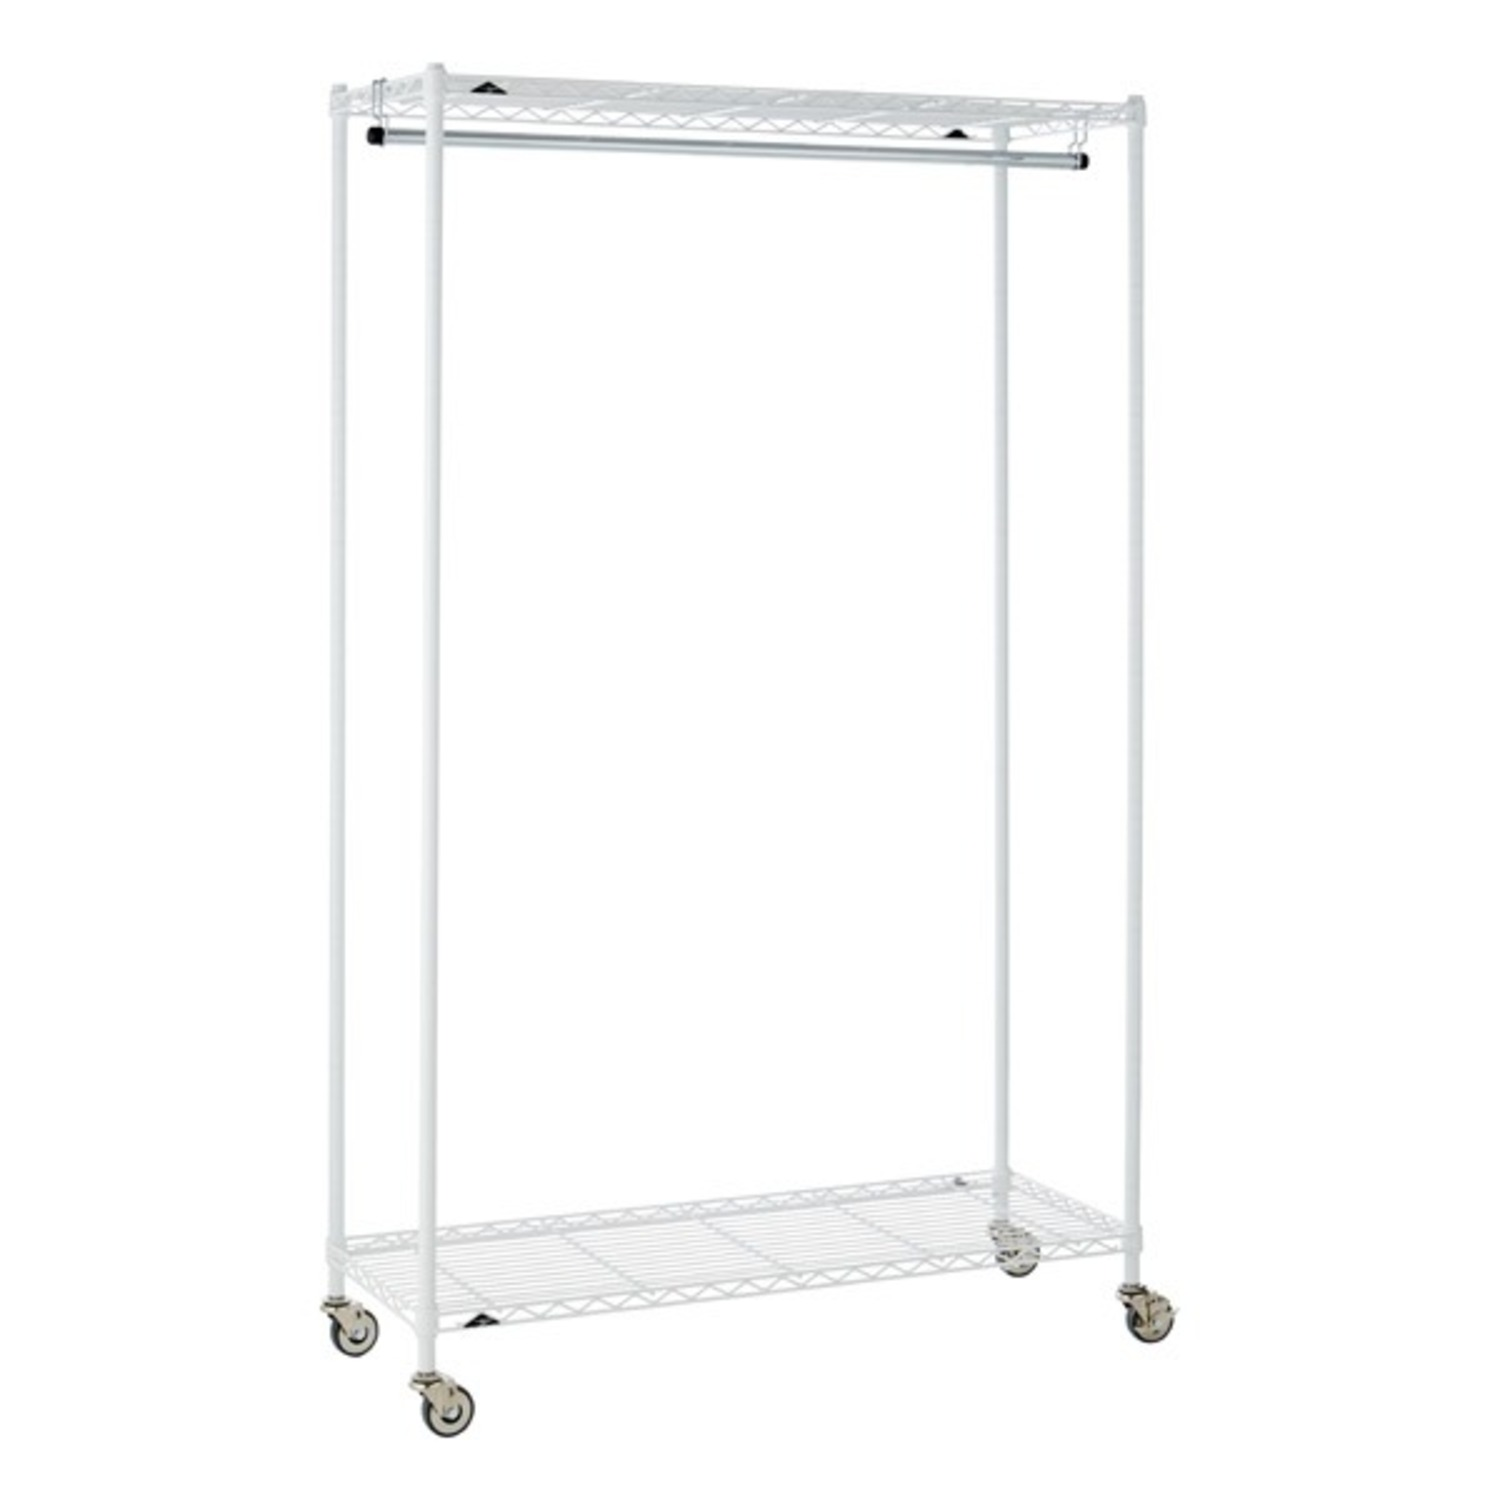 InterMetro Large White Clothes Rack - image-7